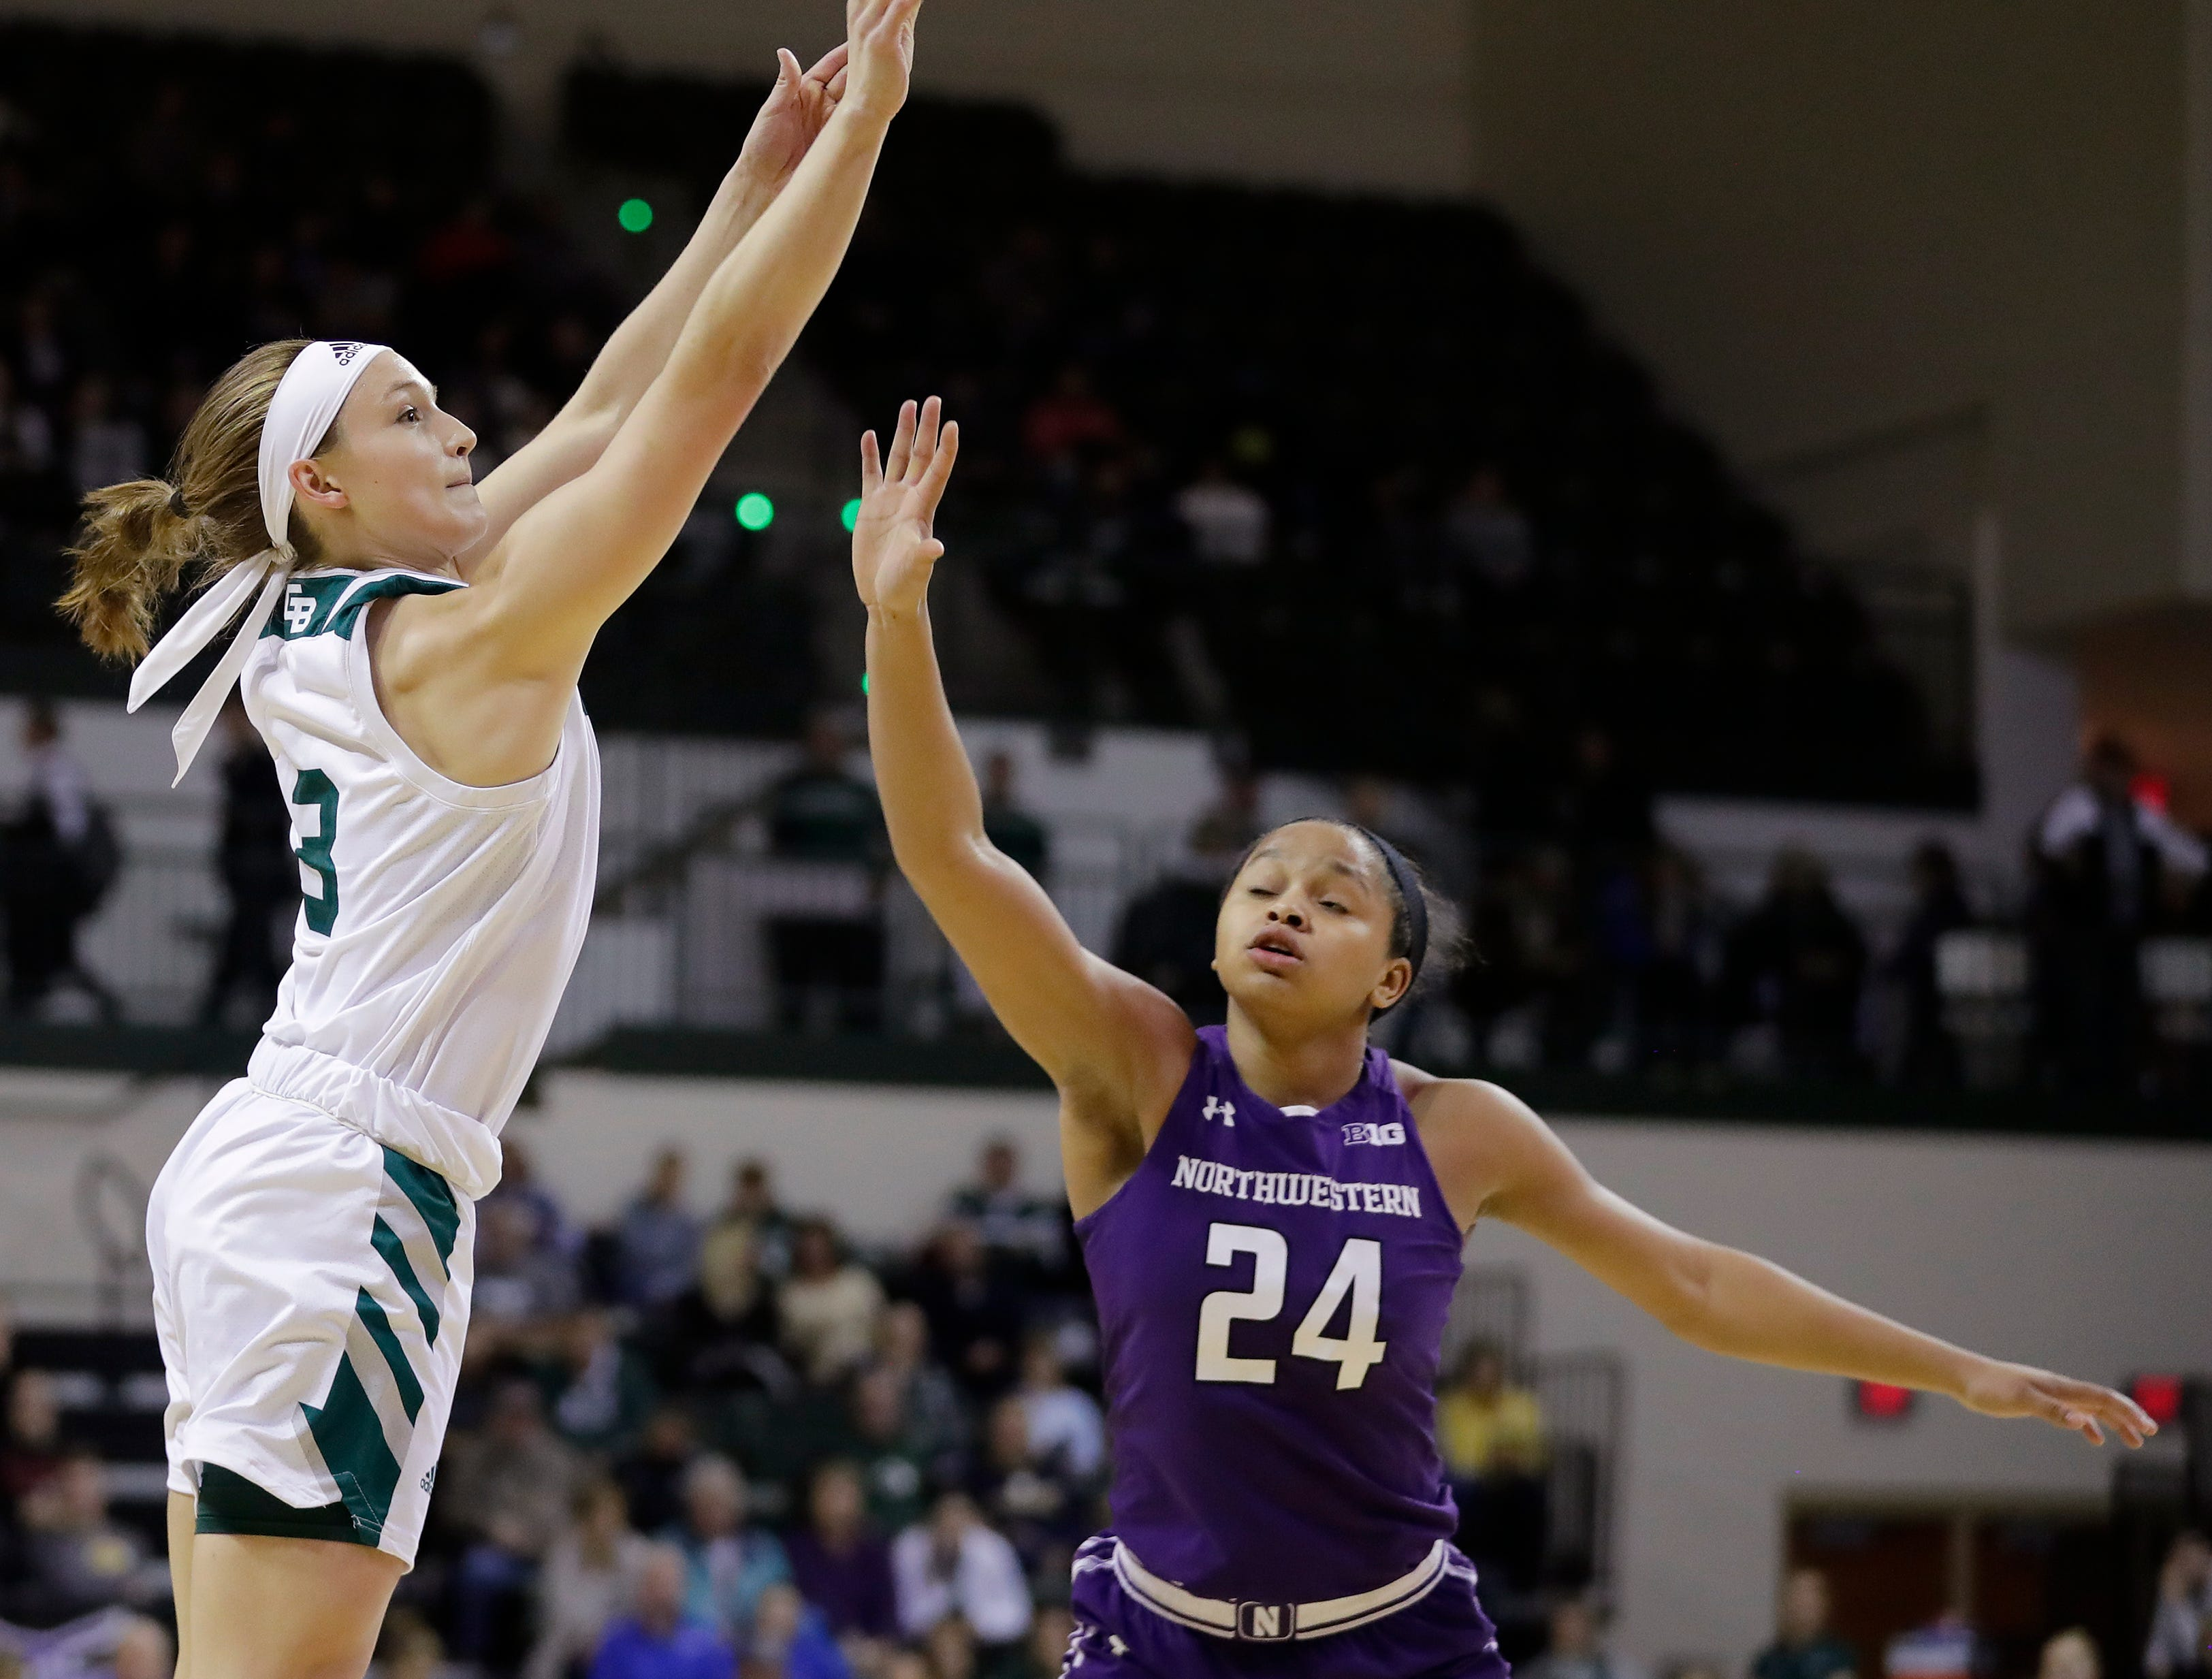 Green Bay Phoenix guard Frankie Wurtz (3) shoots over Northwestern Wildcats guard Jordan Hamilton (24) in a women's NCAA basketball game at the Kress Center on Tuesday, November 6, 2018 in Green Bay, Wis.